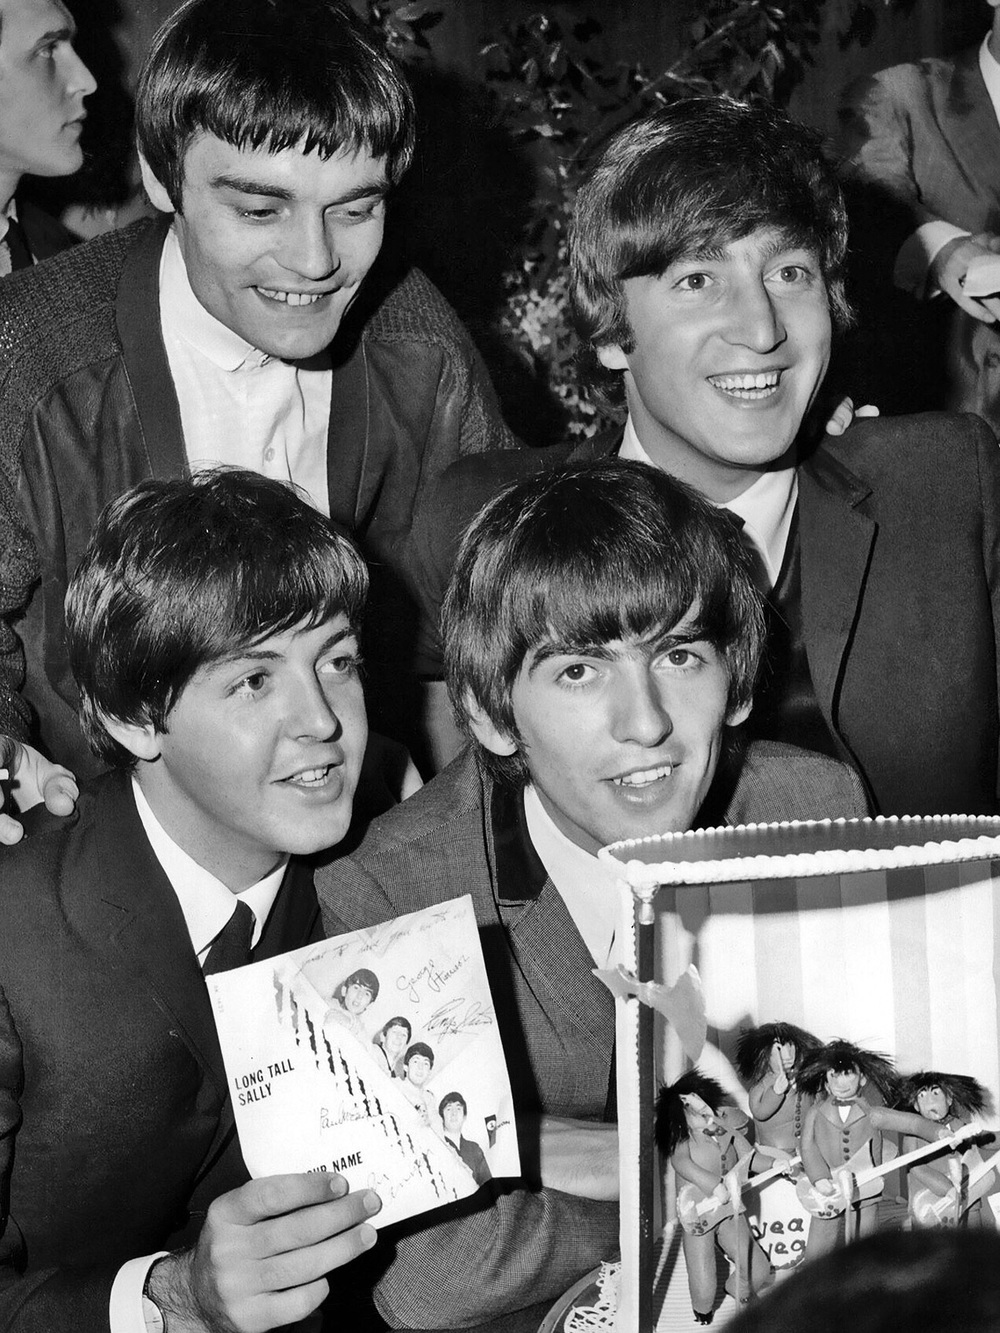 The Beatles with Jimmie Nicol, 1964.